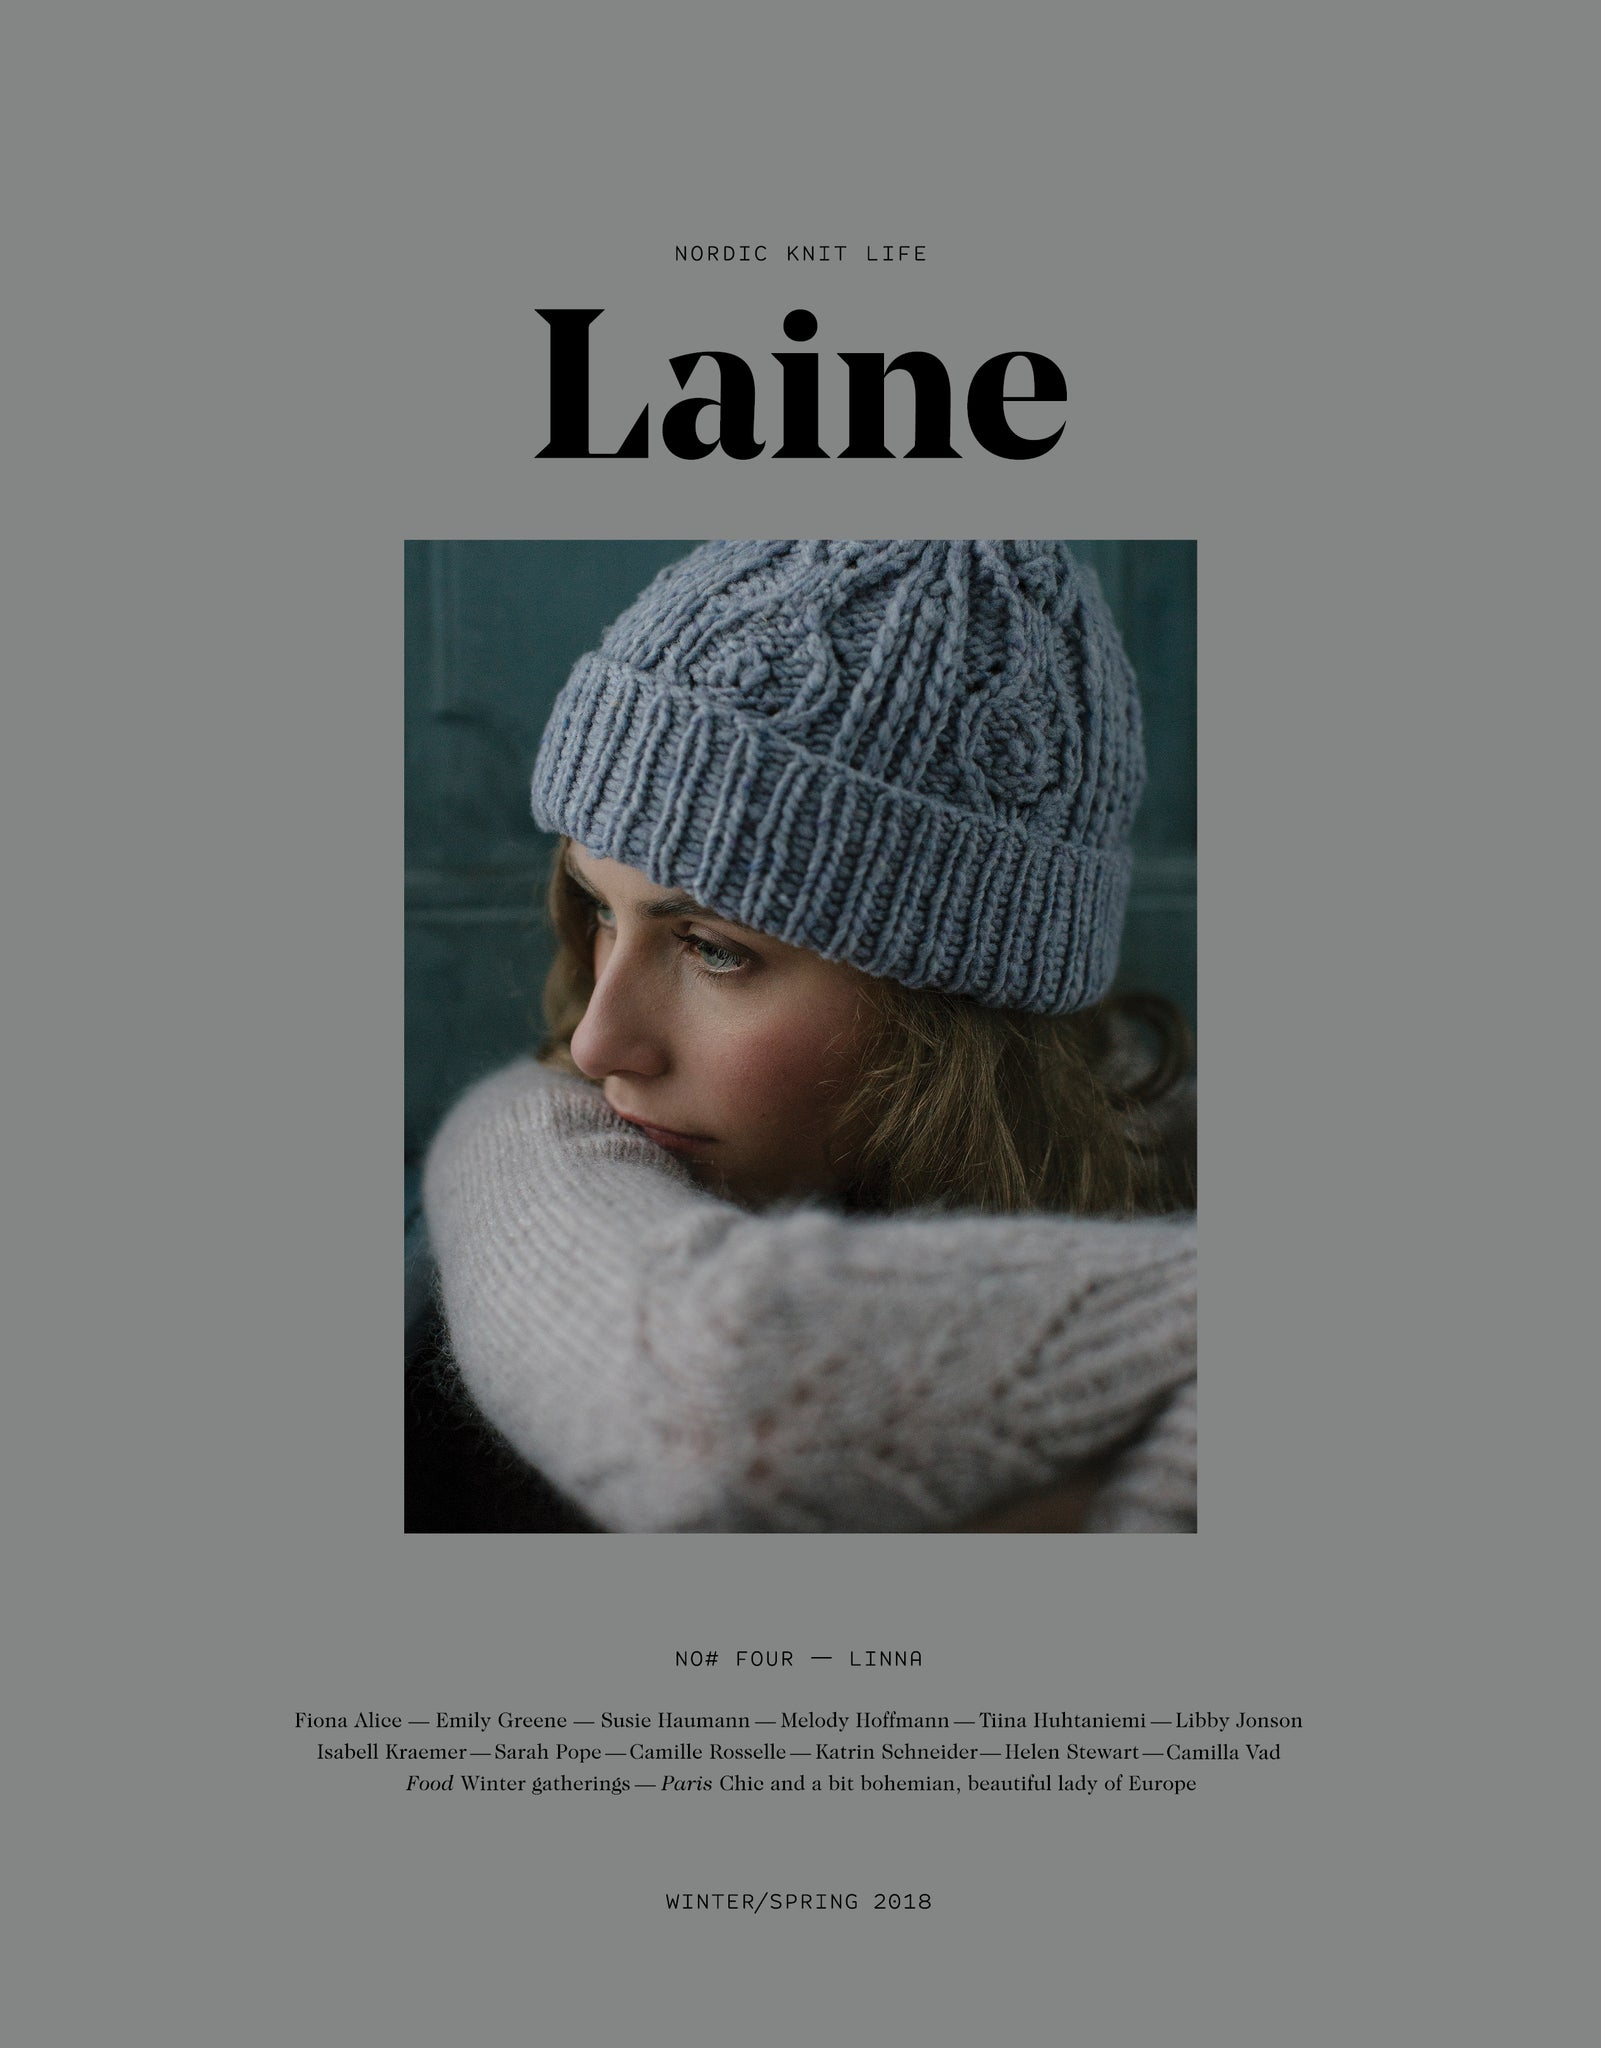 Laine Magazine - Issue 4 (Winter/Spring 2018) - Farm to Cable Yarns